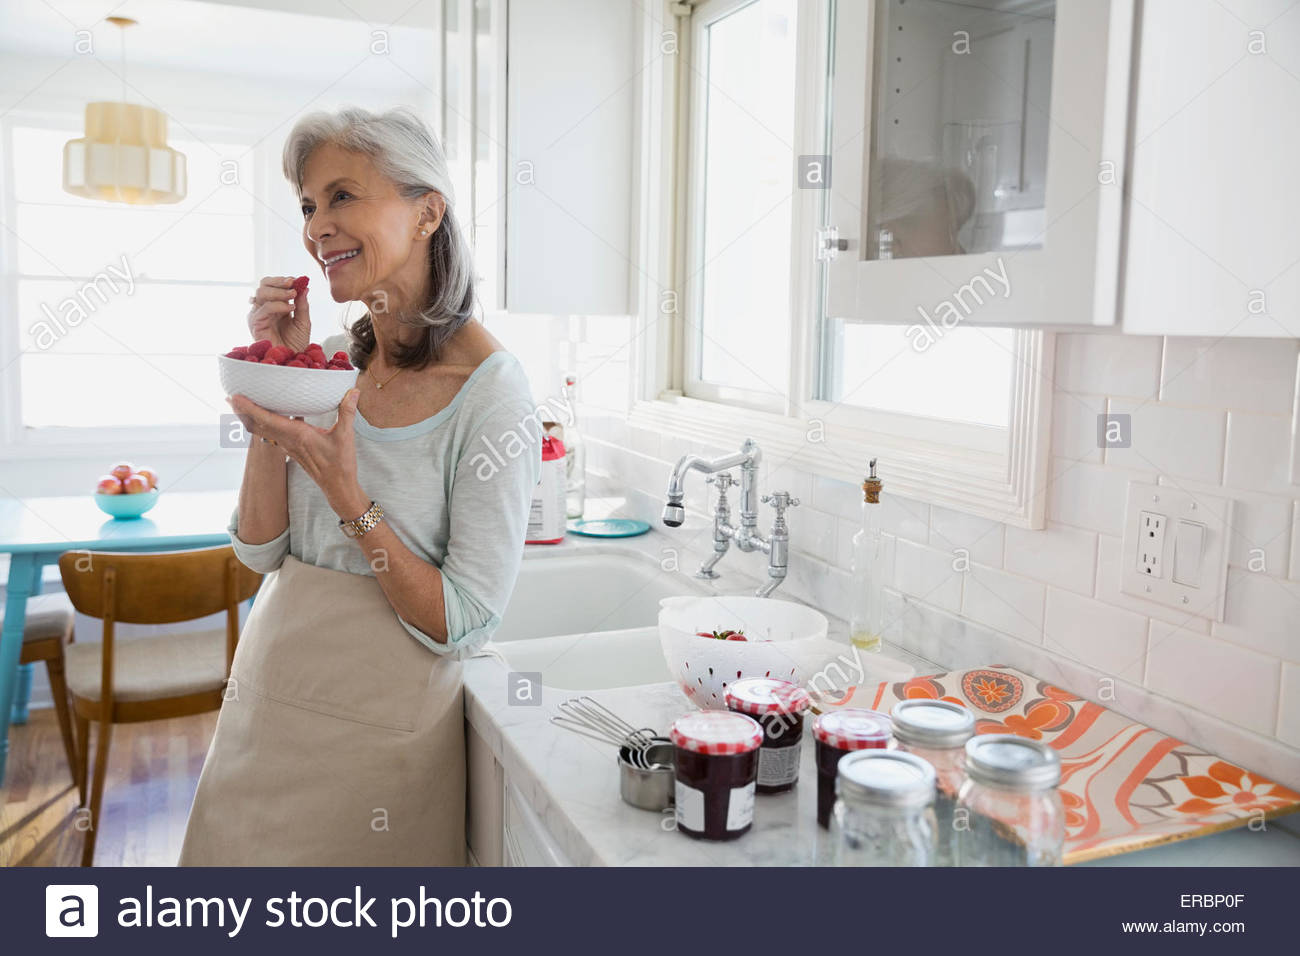 Smiling woman making jam with berries in kitchen - Stock Image